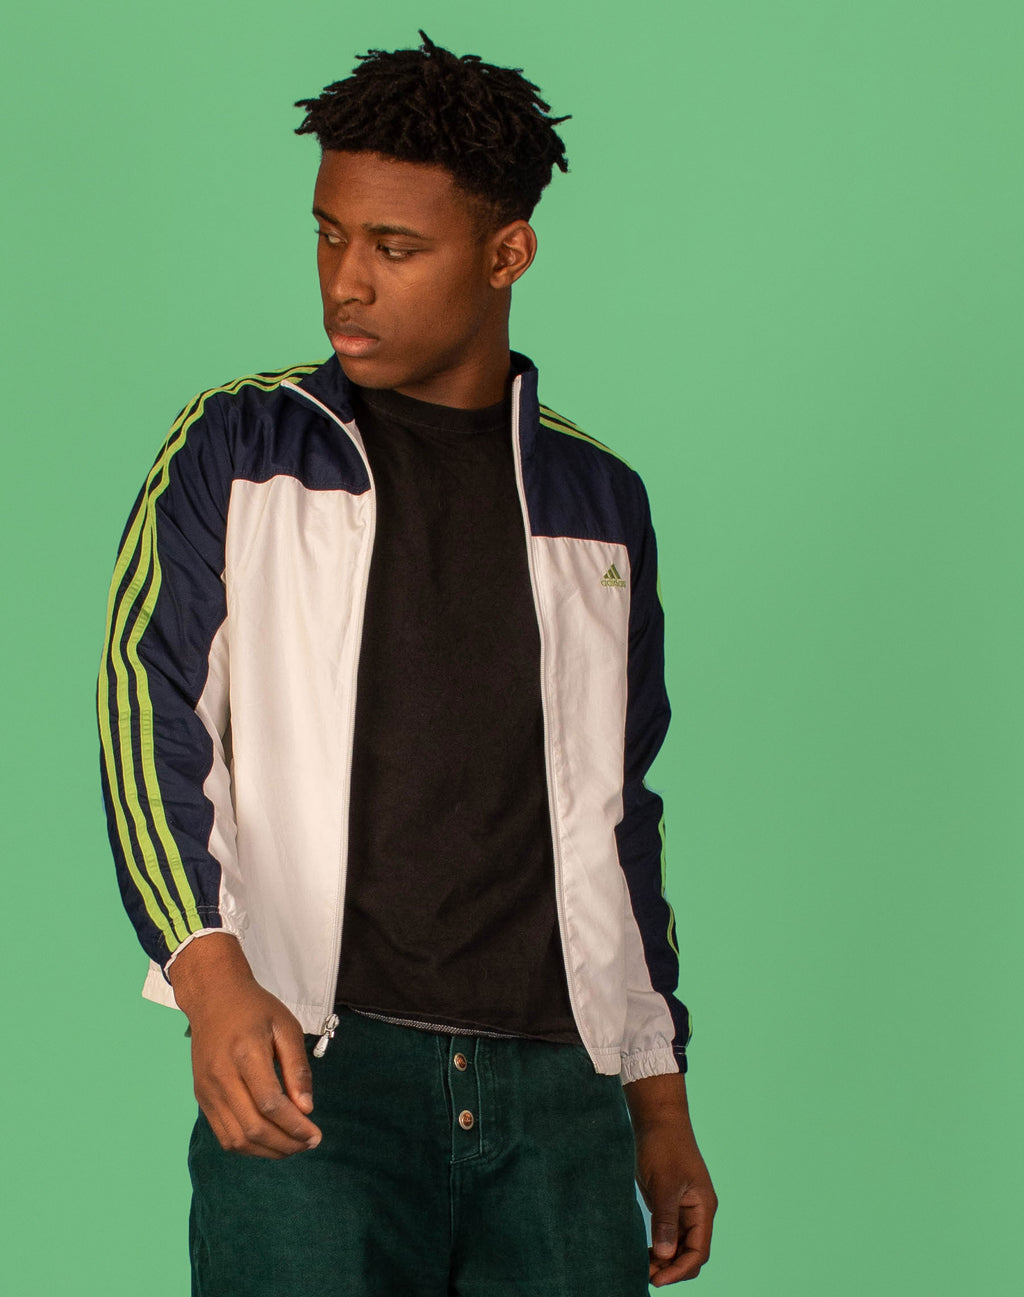 ADIDAS NAVY/WHITE TRACK JACKET